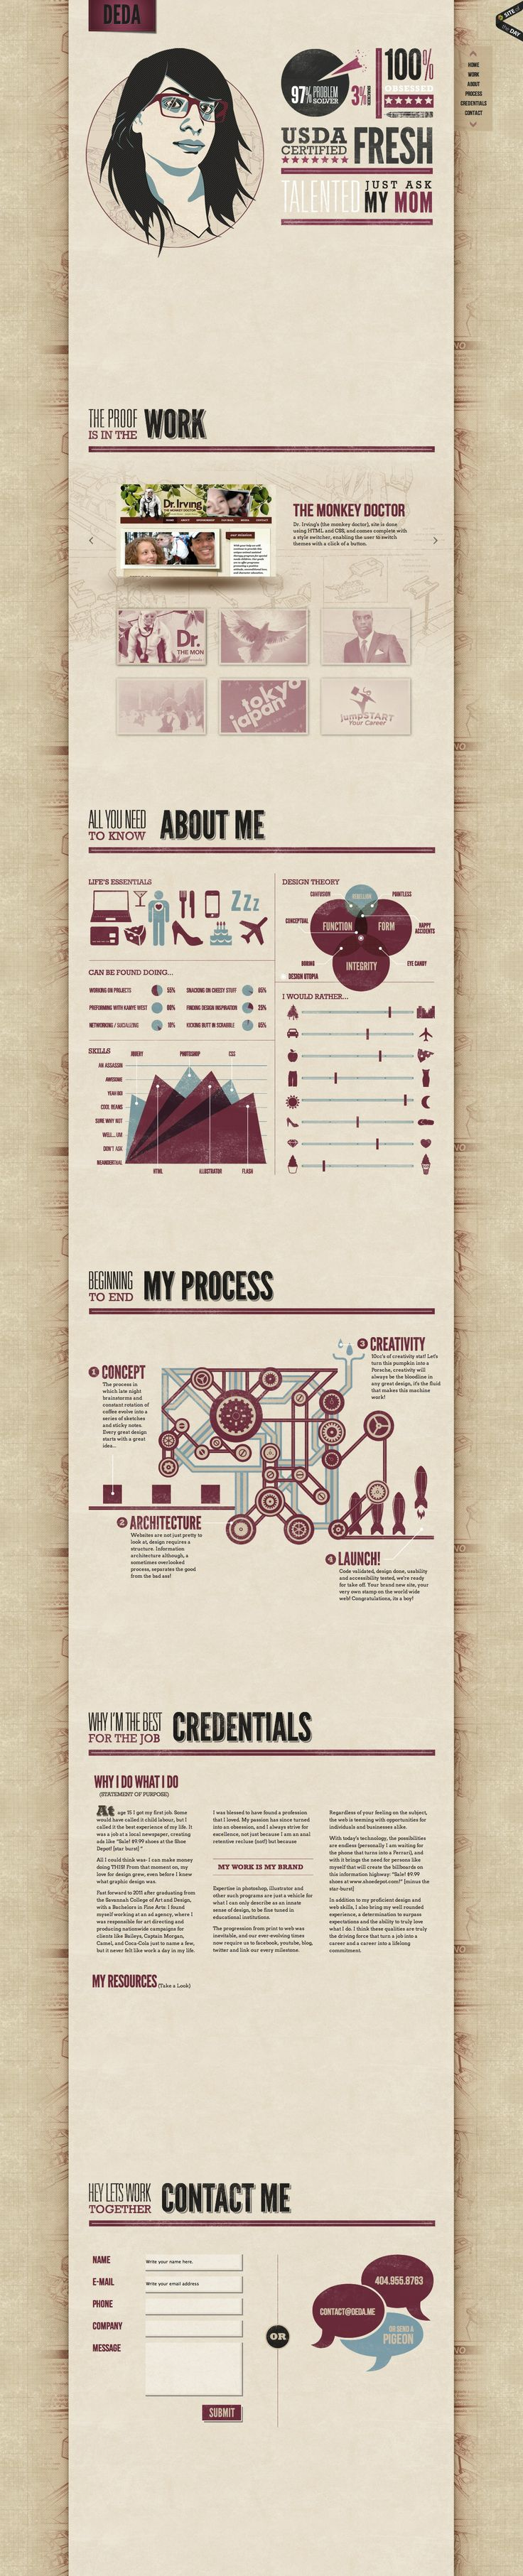 17 best images about resume portfolio and marketing myself on 17 best images about resume portfolio and marketing myself infographic resume creative resume and cv design